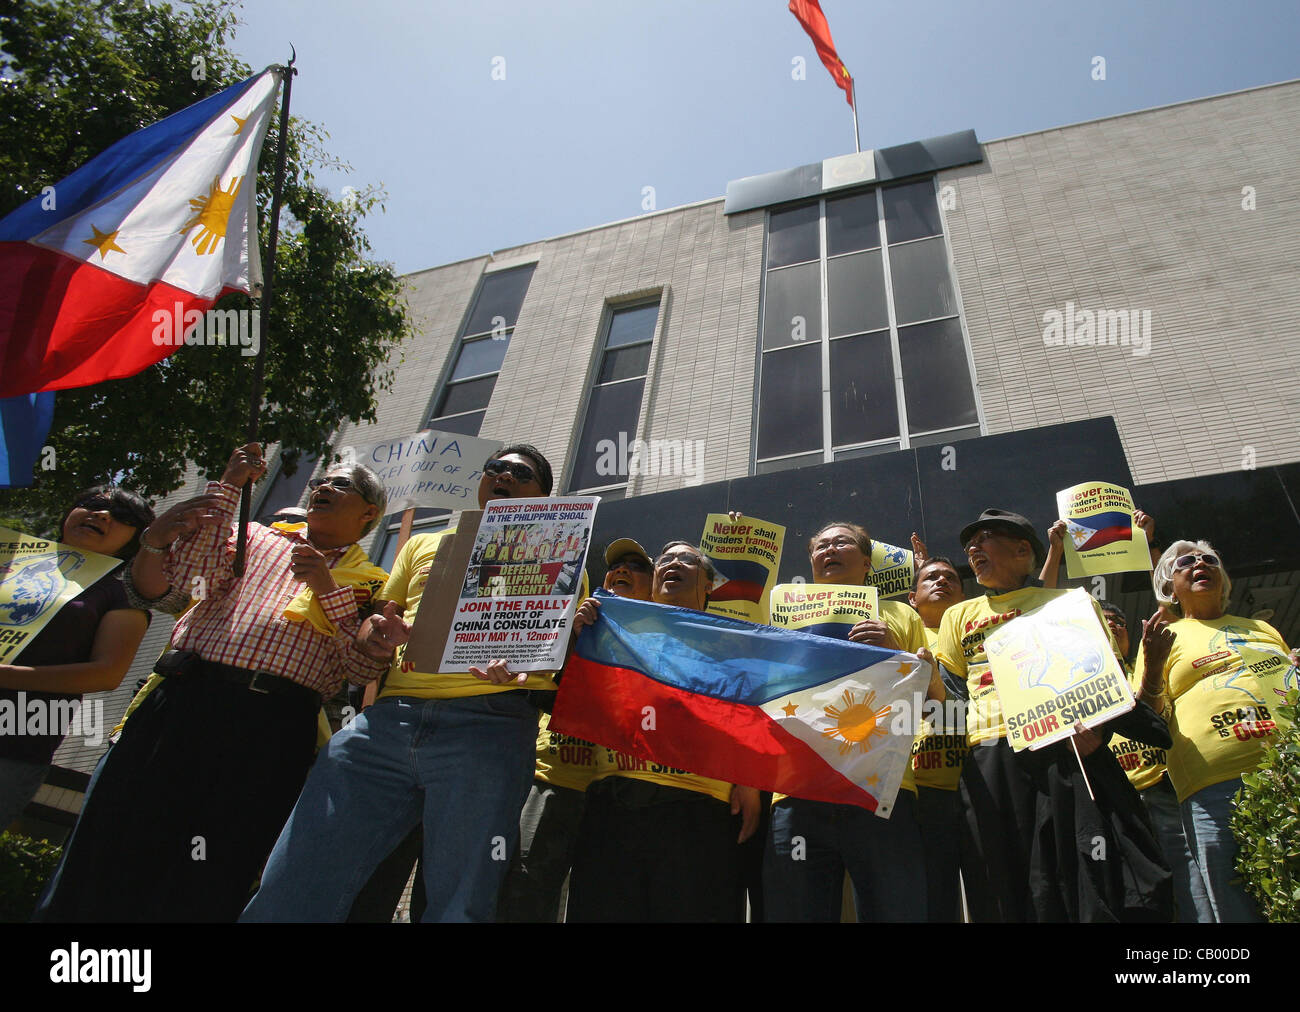 May 11, 2012 - Los Angeles, California, U.S. - Filipino activists take part in a demonstration in front of the Chinese - Stock Image